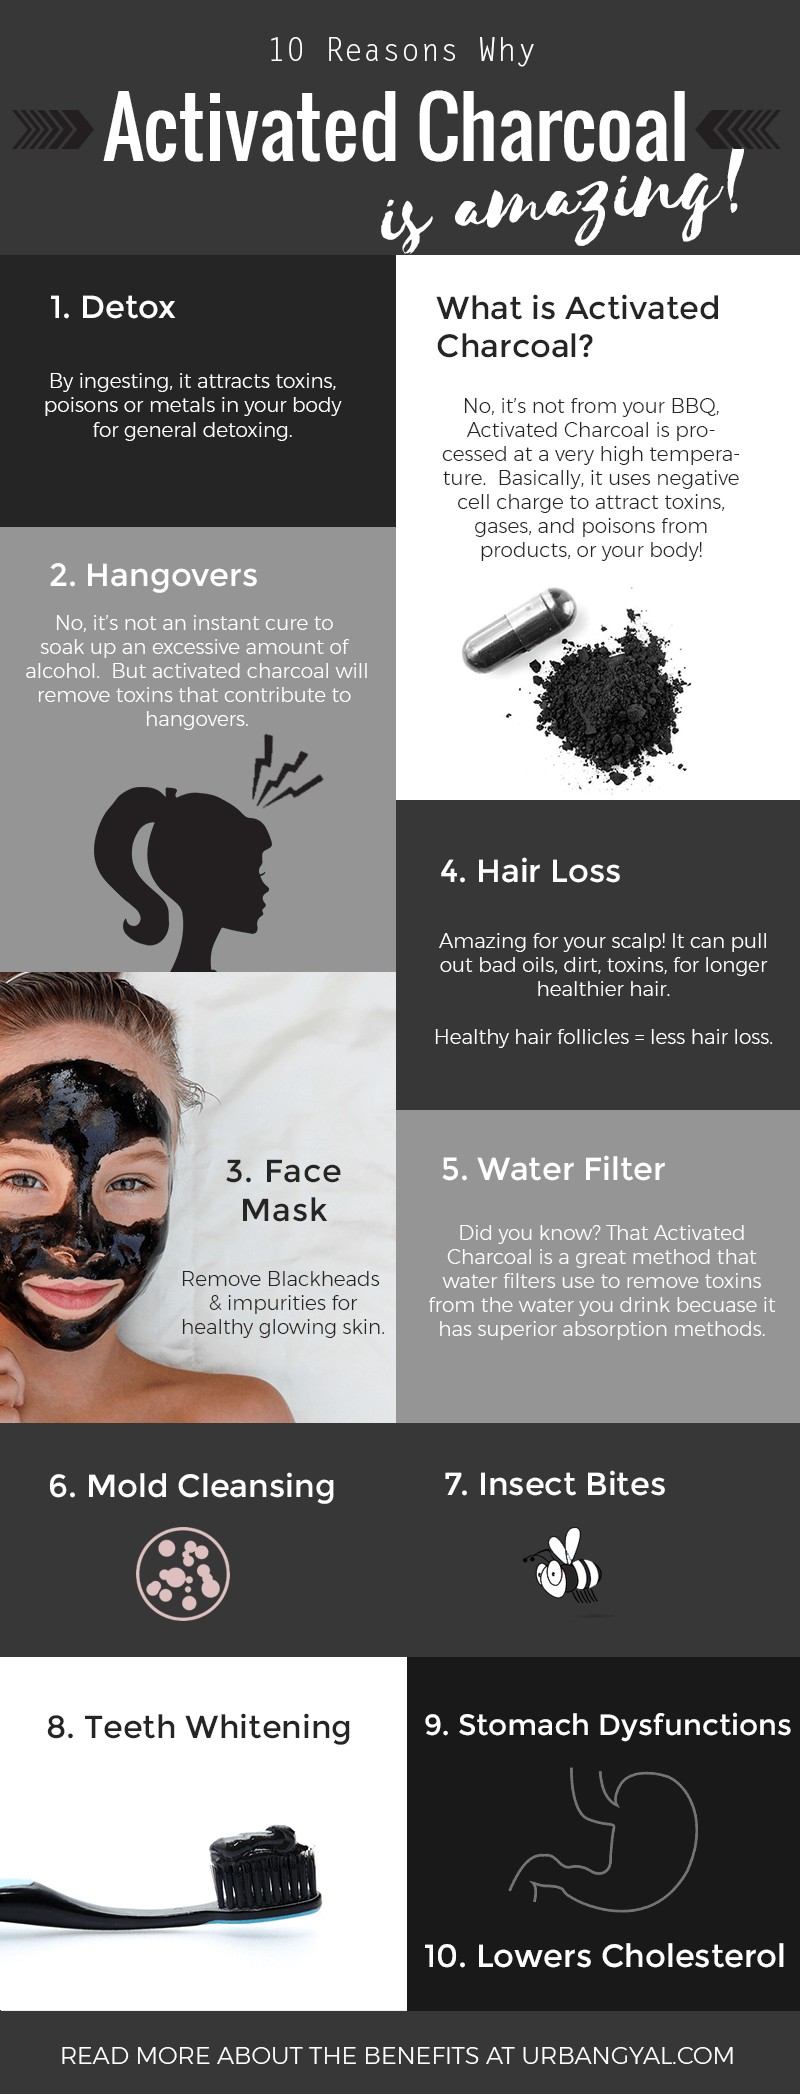 Activated Charcoal Benefits Infographic